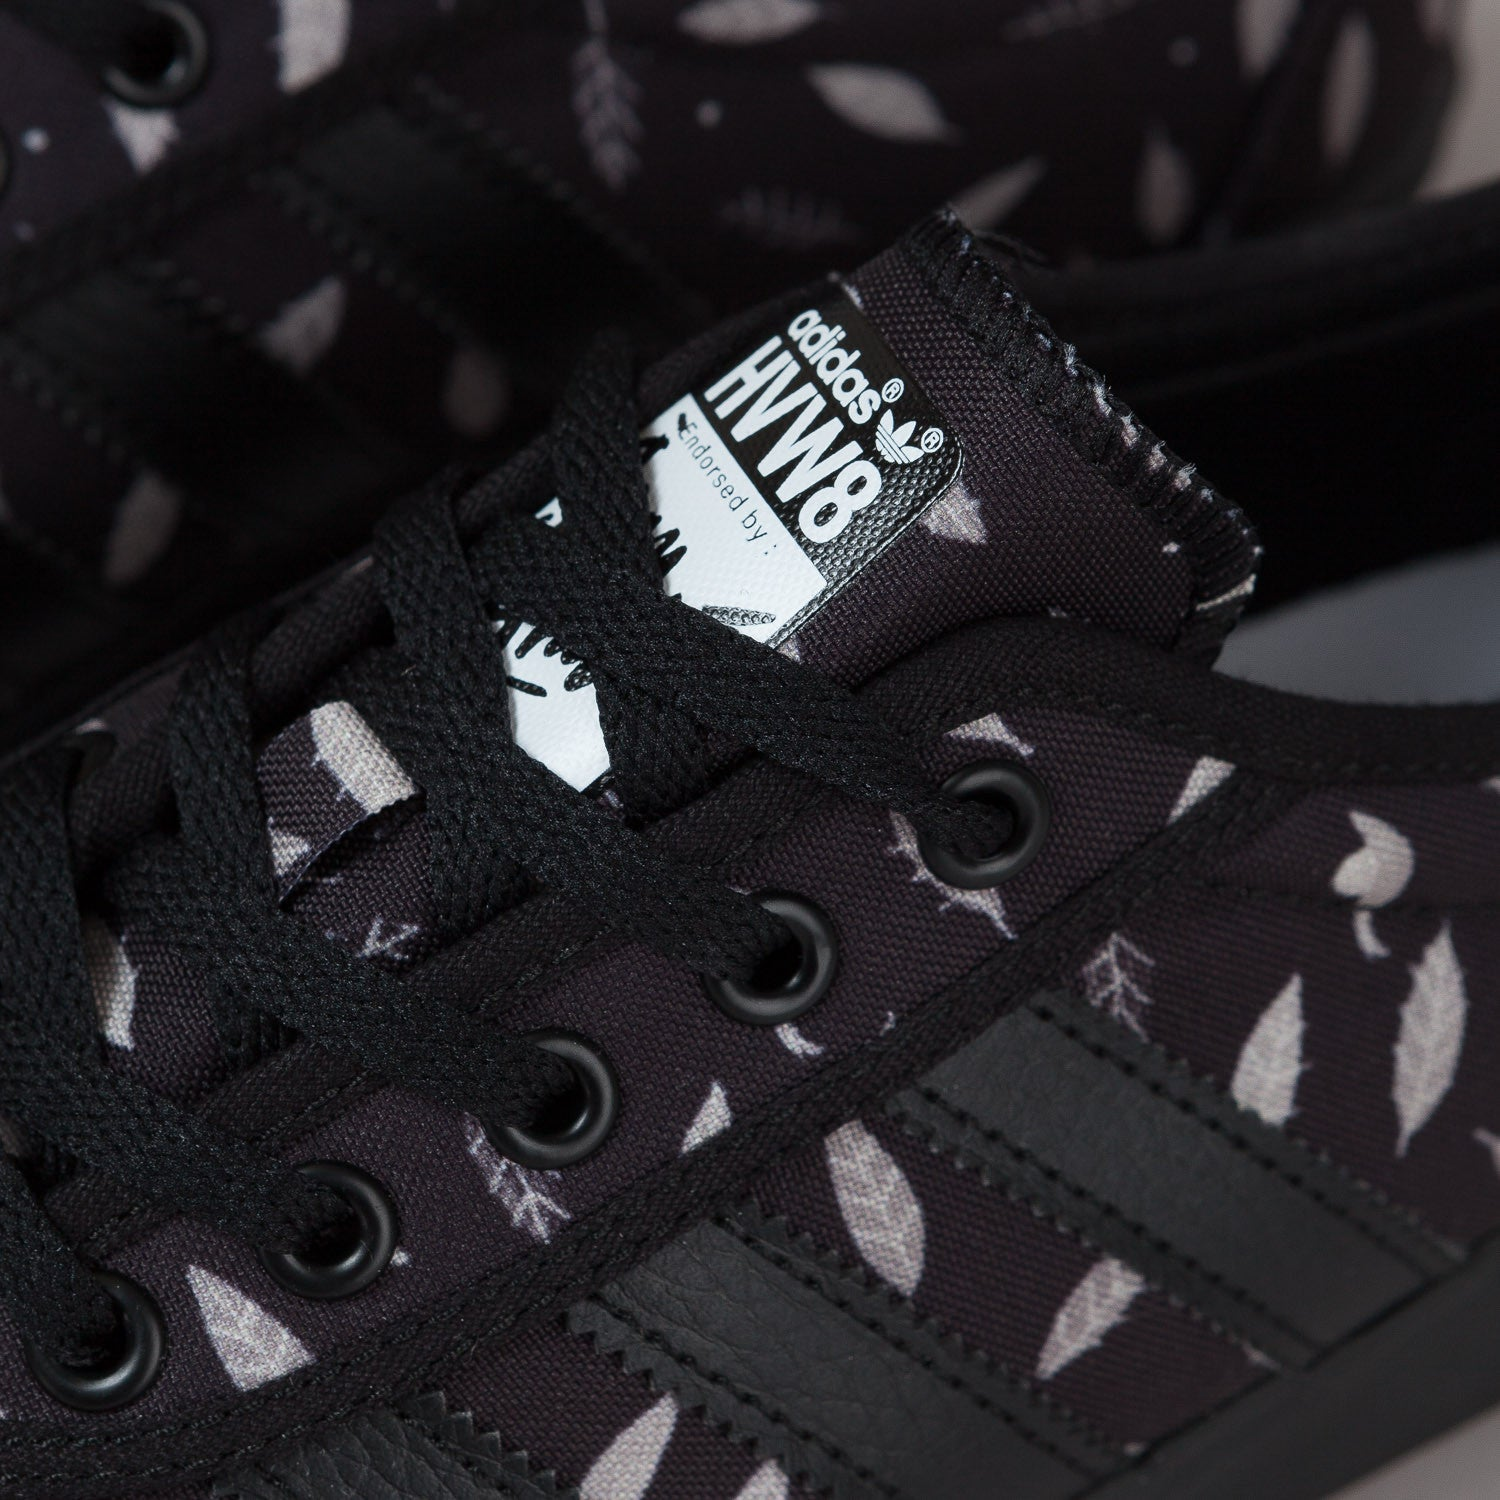 Adidas X HVW8 Adi-Ease Shoes - Core Black / Grey / White